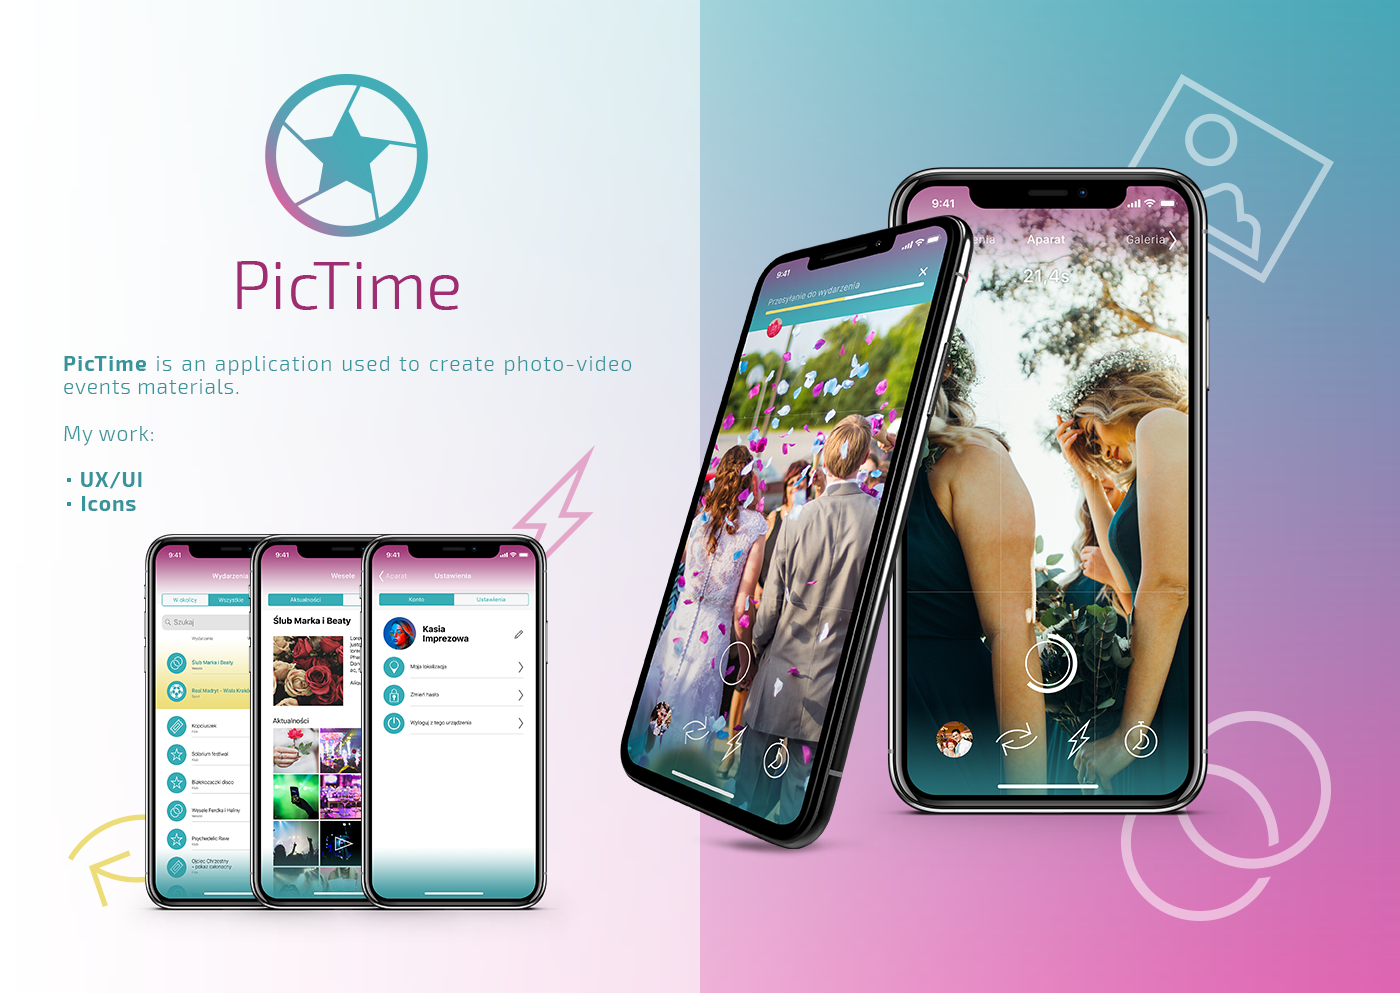 pictime photo video phone app wedding party Event Events UI